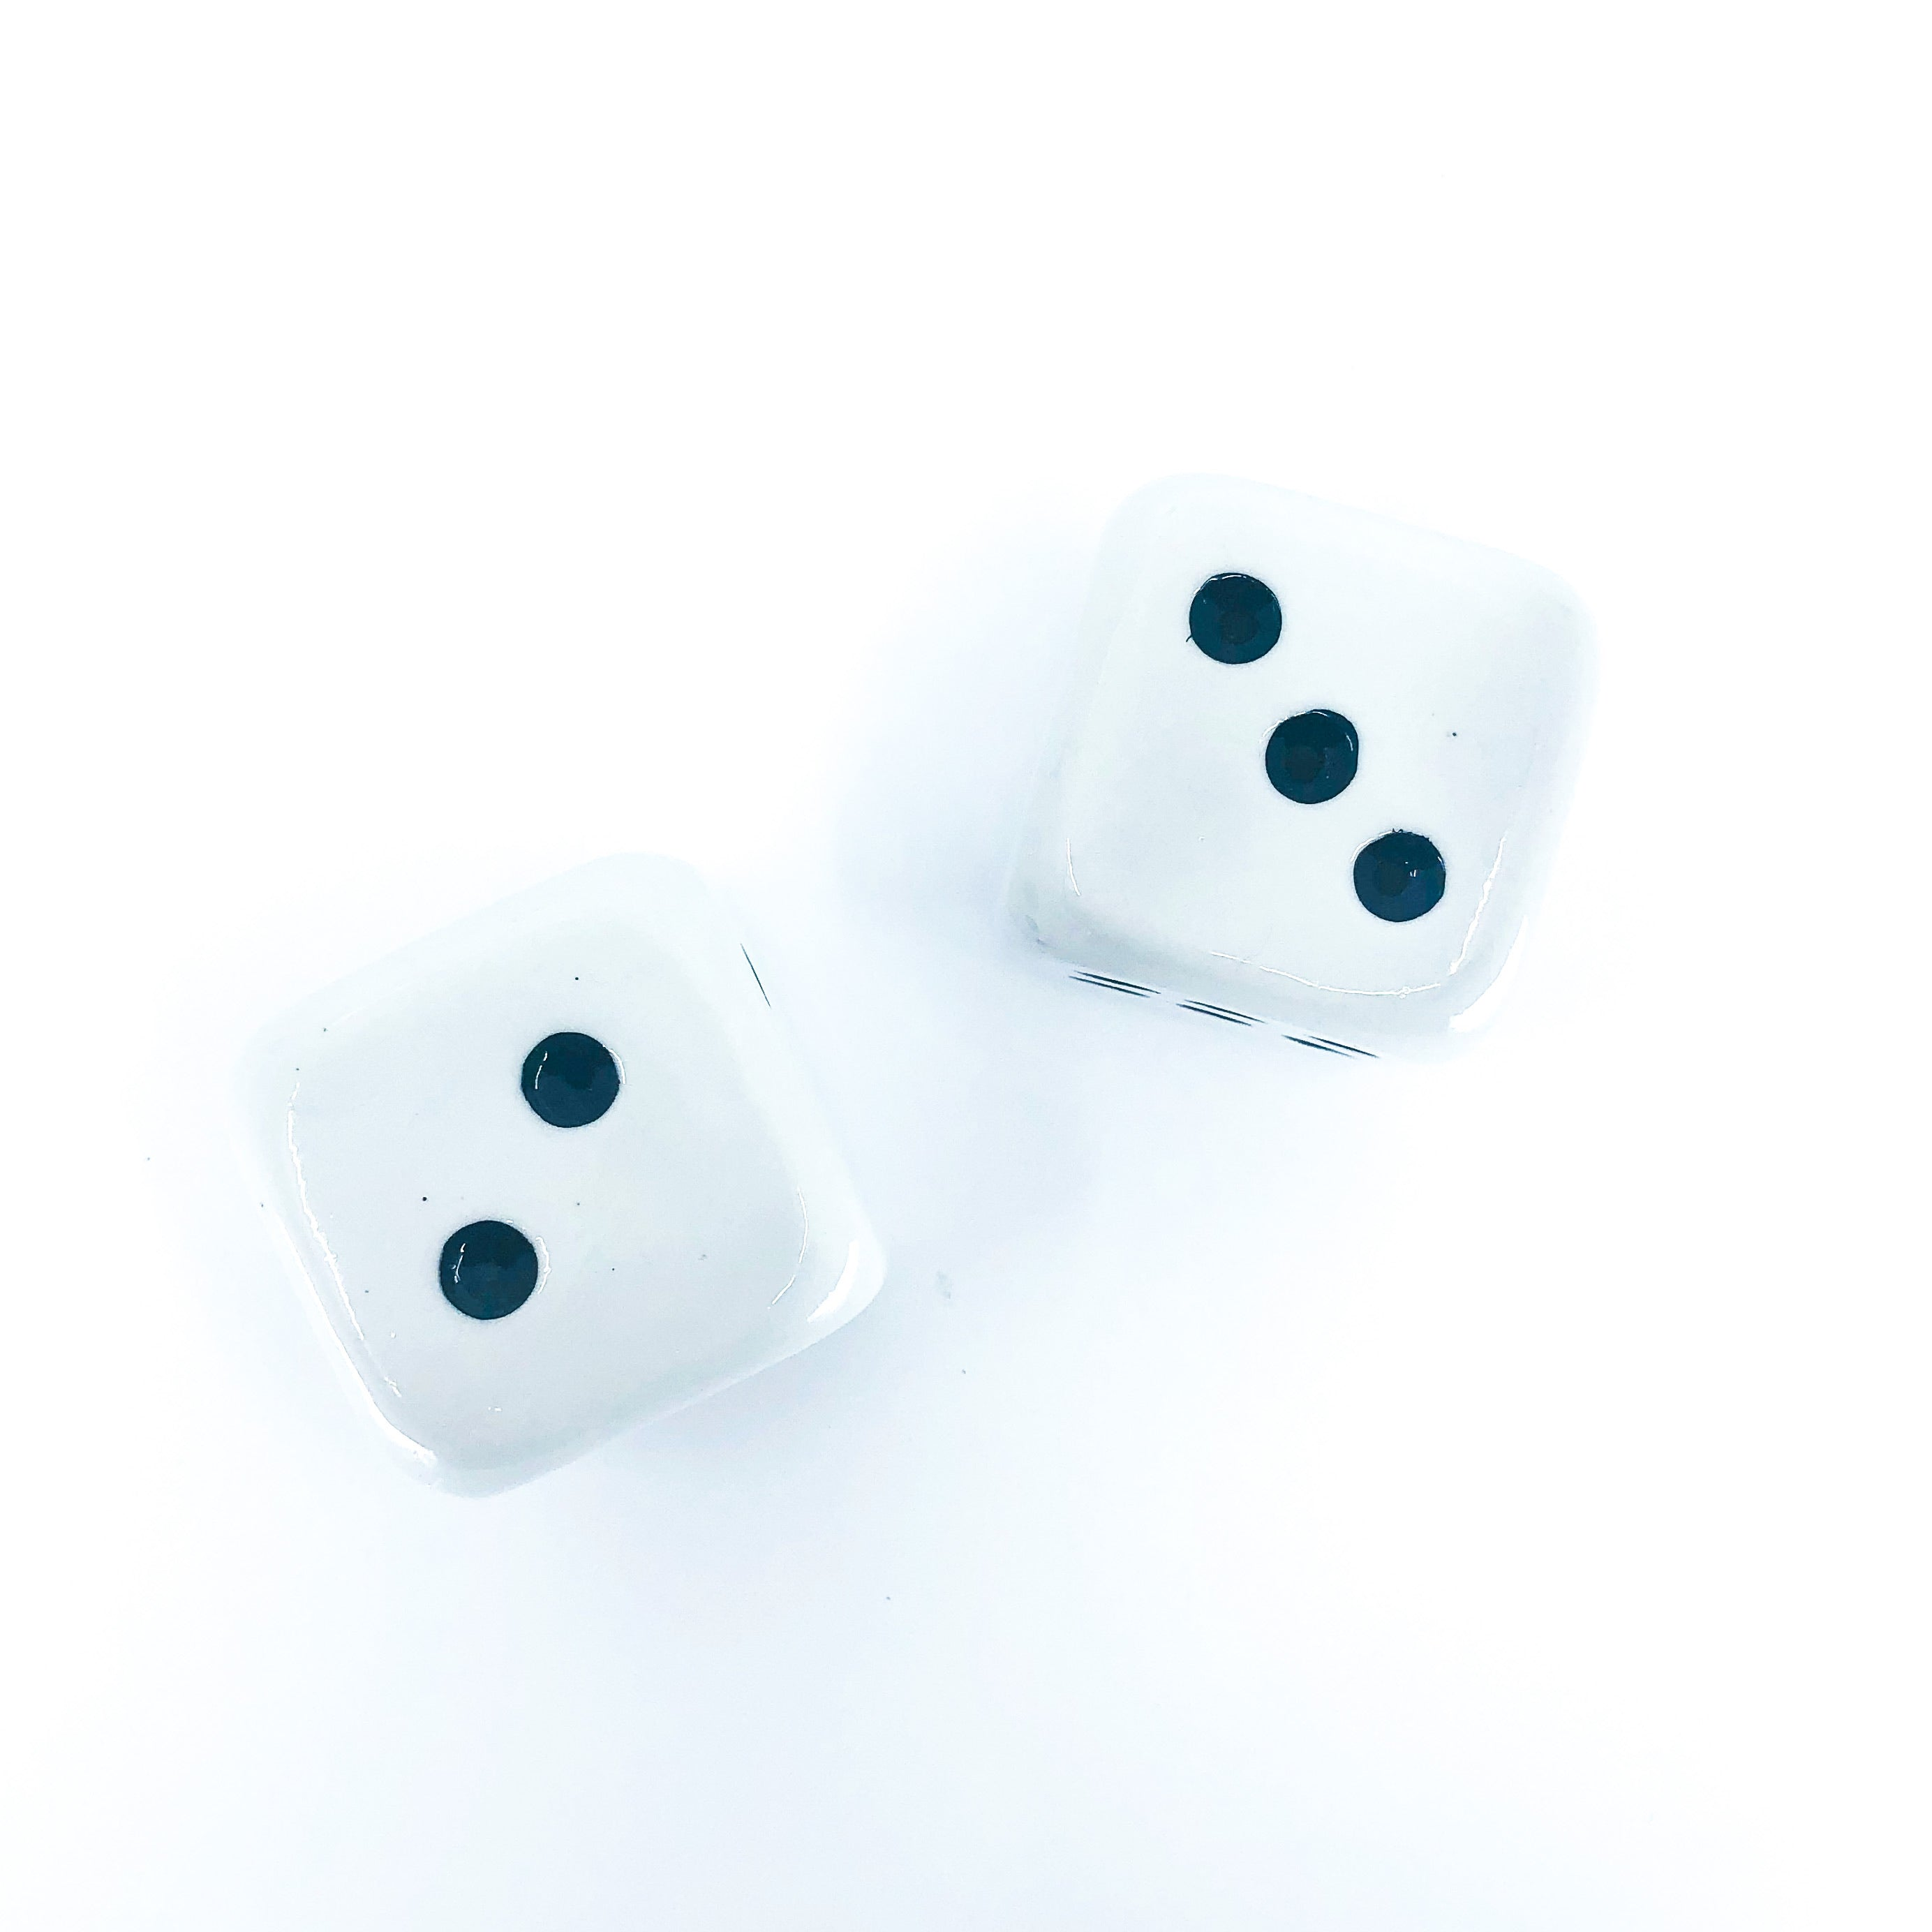 Vintage Pair of Dice, Salt & Pepper Shakers